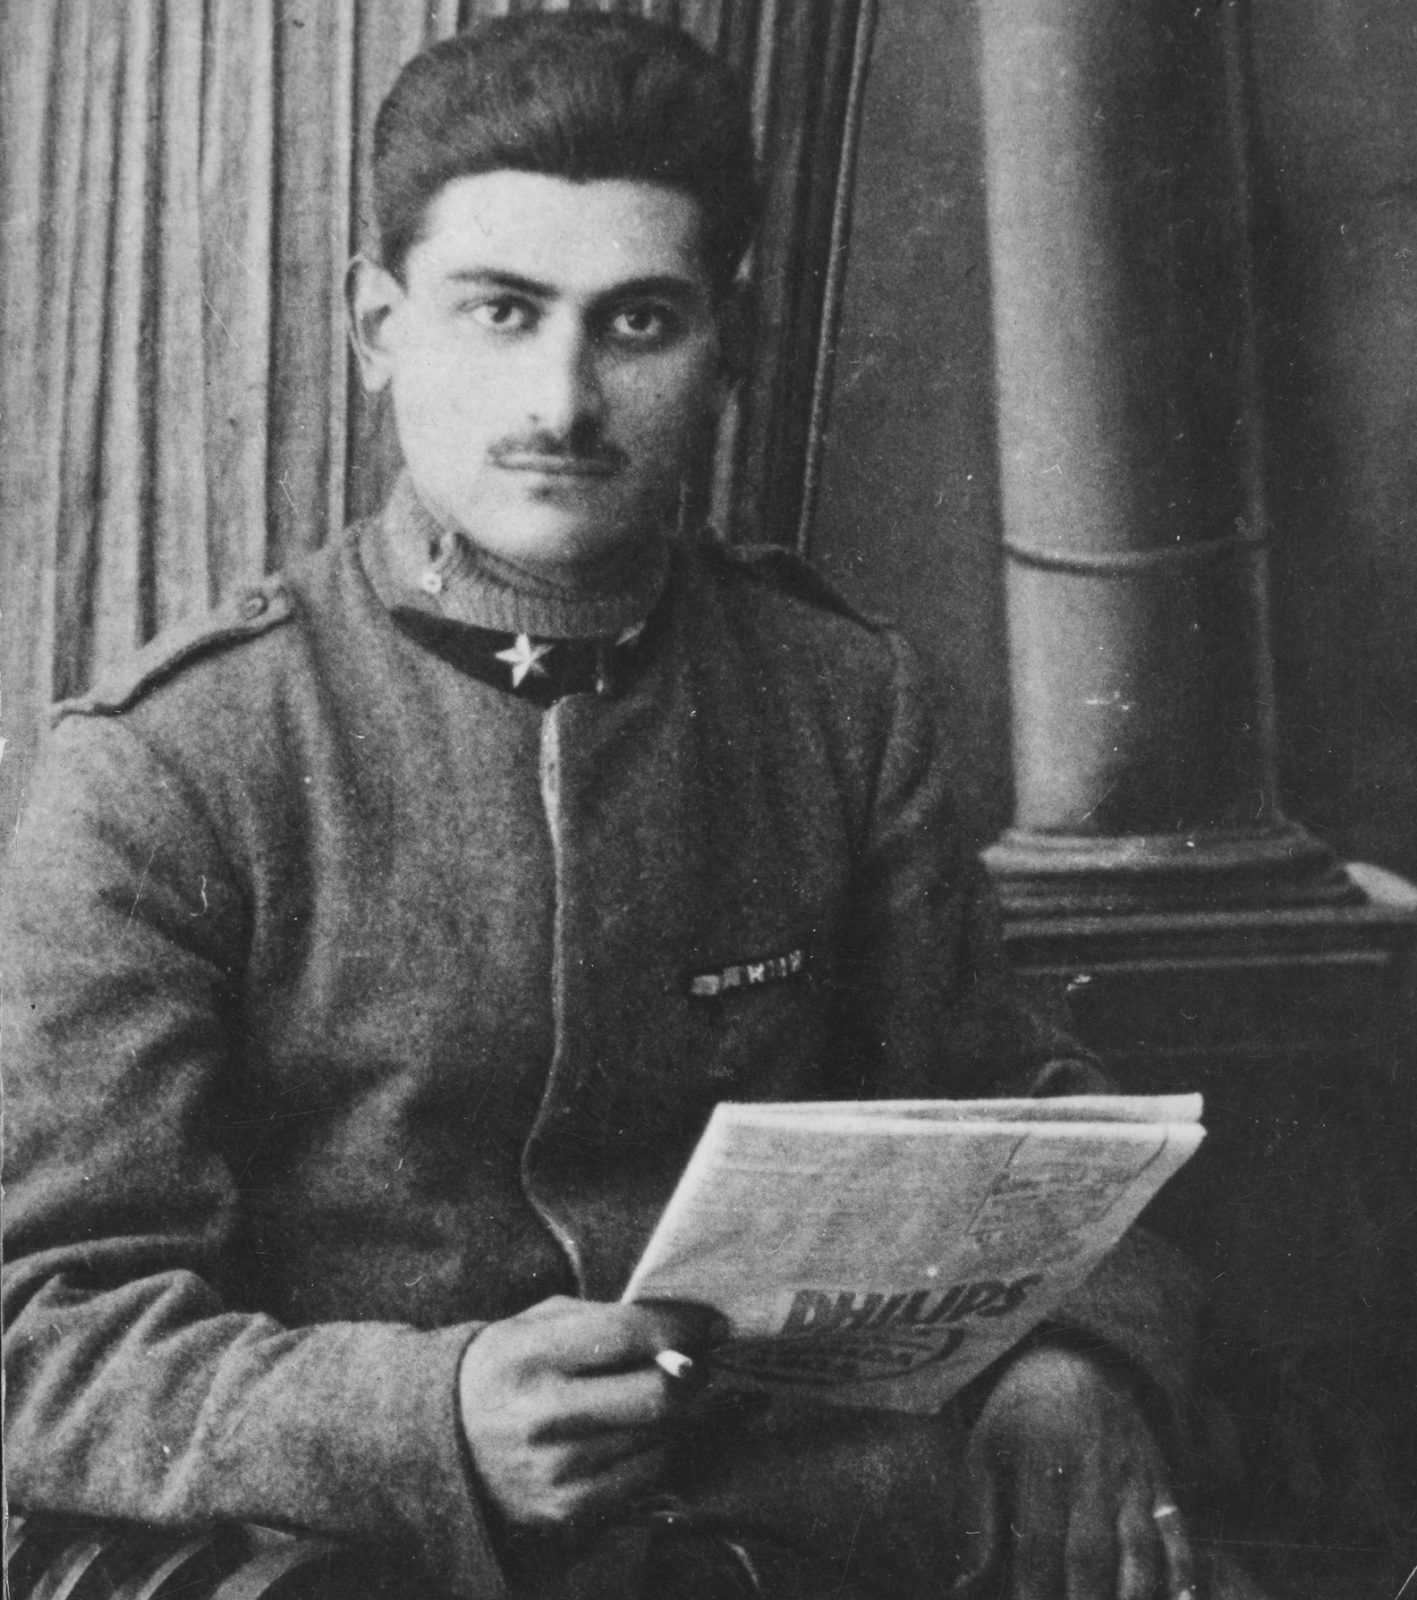 portrait of Adolpho Baldizzi in a uniform